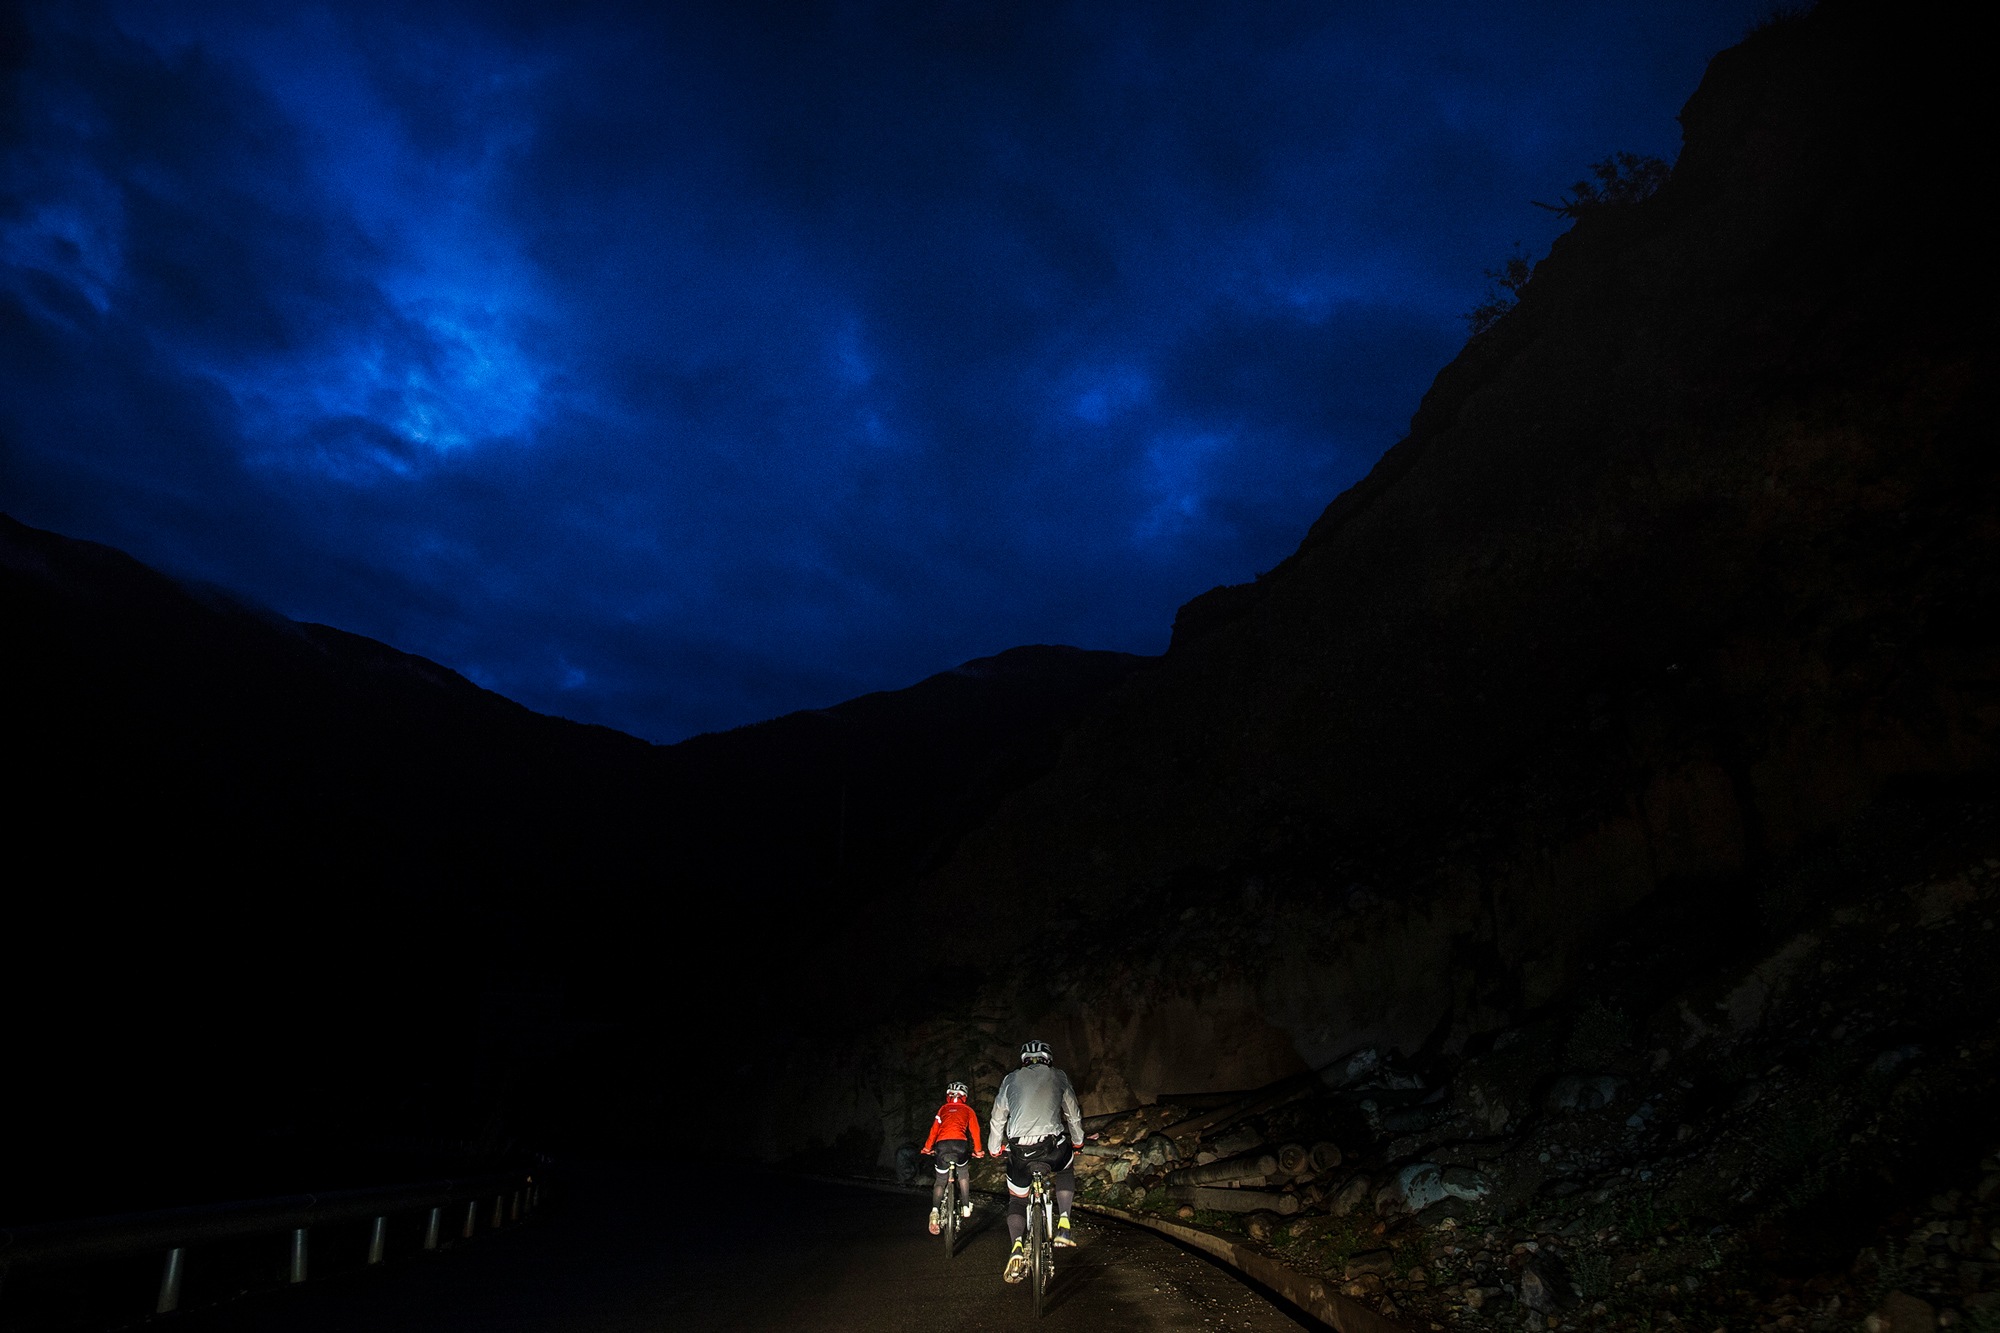 In order to cross a bridge which will be closed later in the day, Chao and Runxi get up at 5:00 a.m. to start the day's ride, in Rumei township, Qamdo, Tibet, July 26.